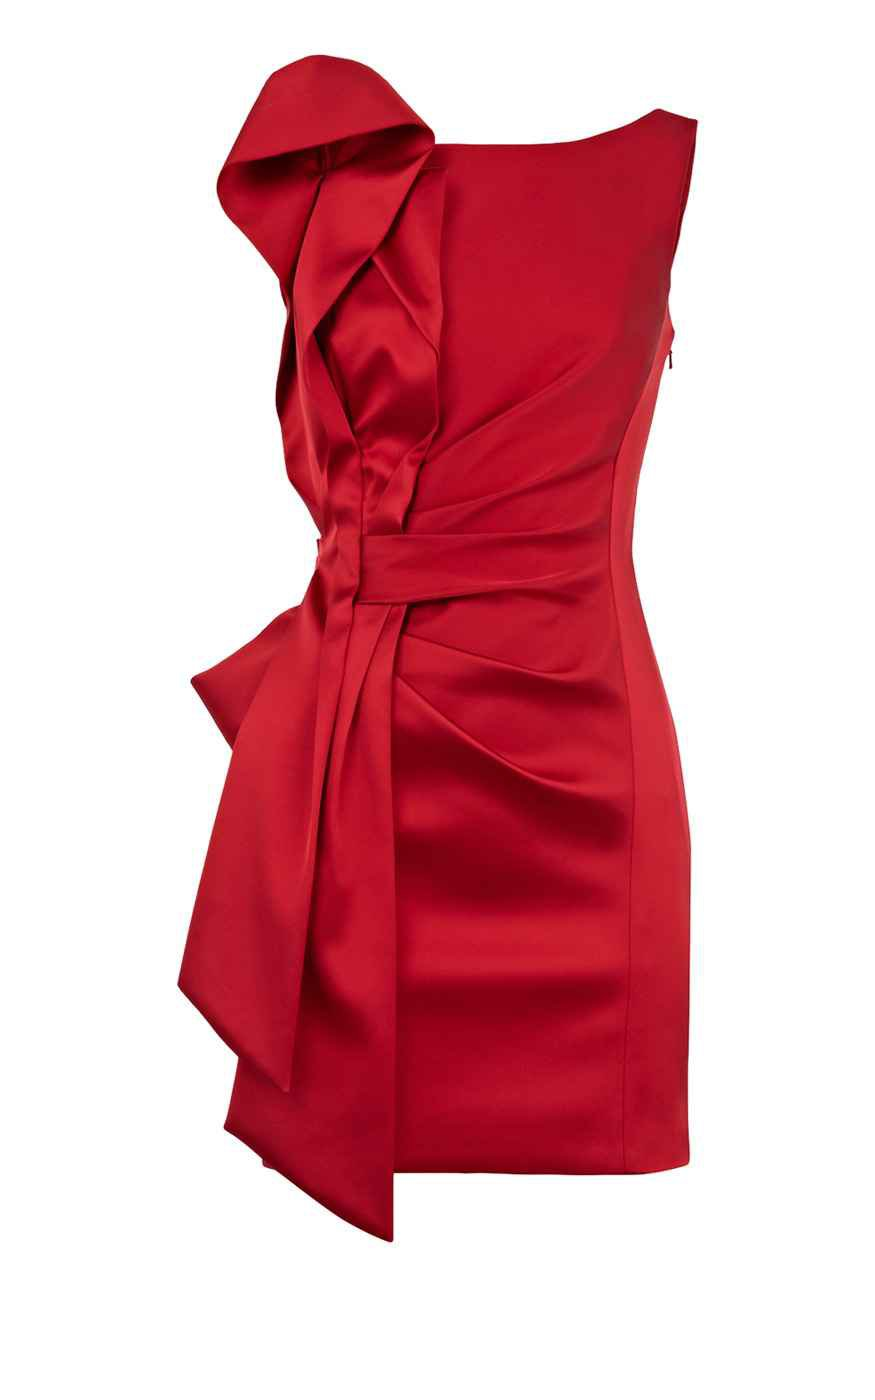 Karen Millen Signature Stretch Satin Dress Red,karen millen jacket,karen millen black,Free and Fast Shipping, karen millen clothing online store Wholesale online